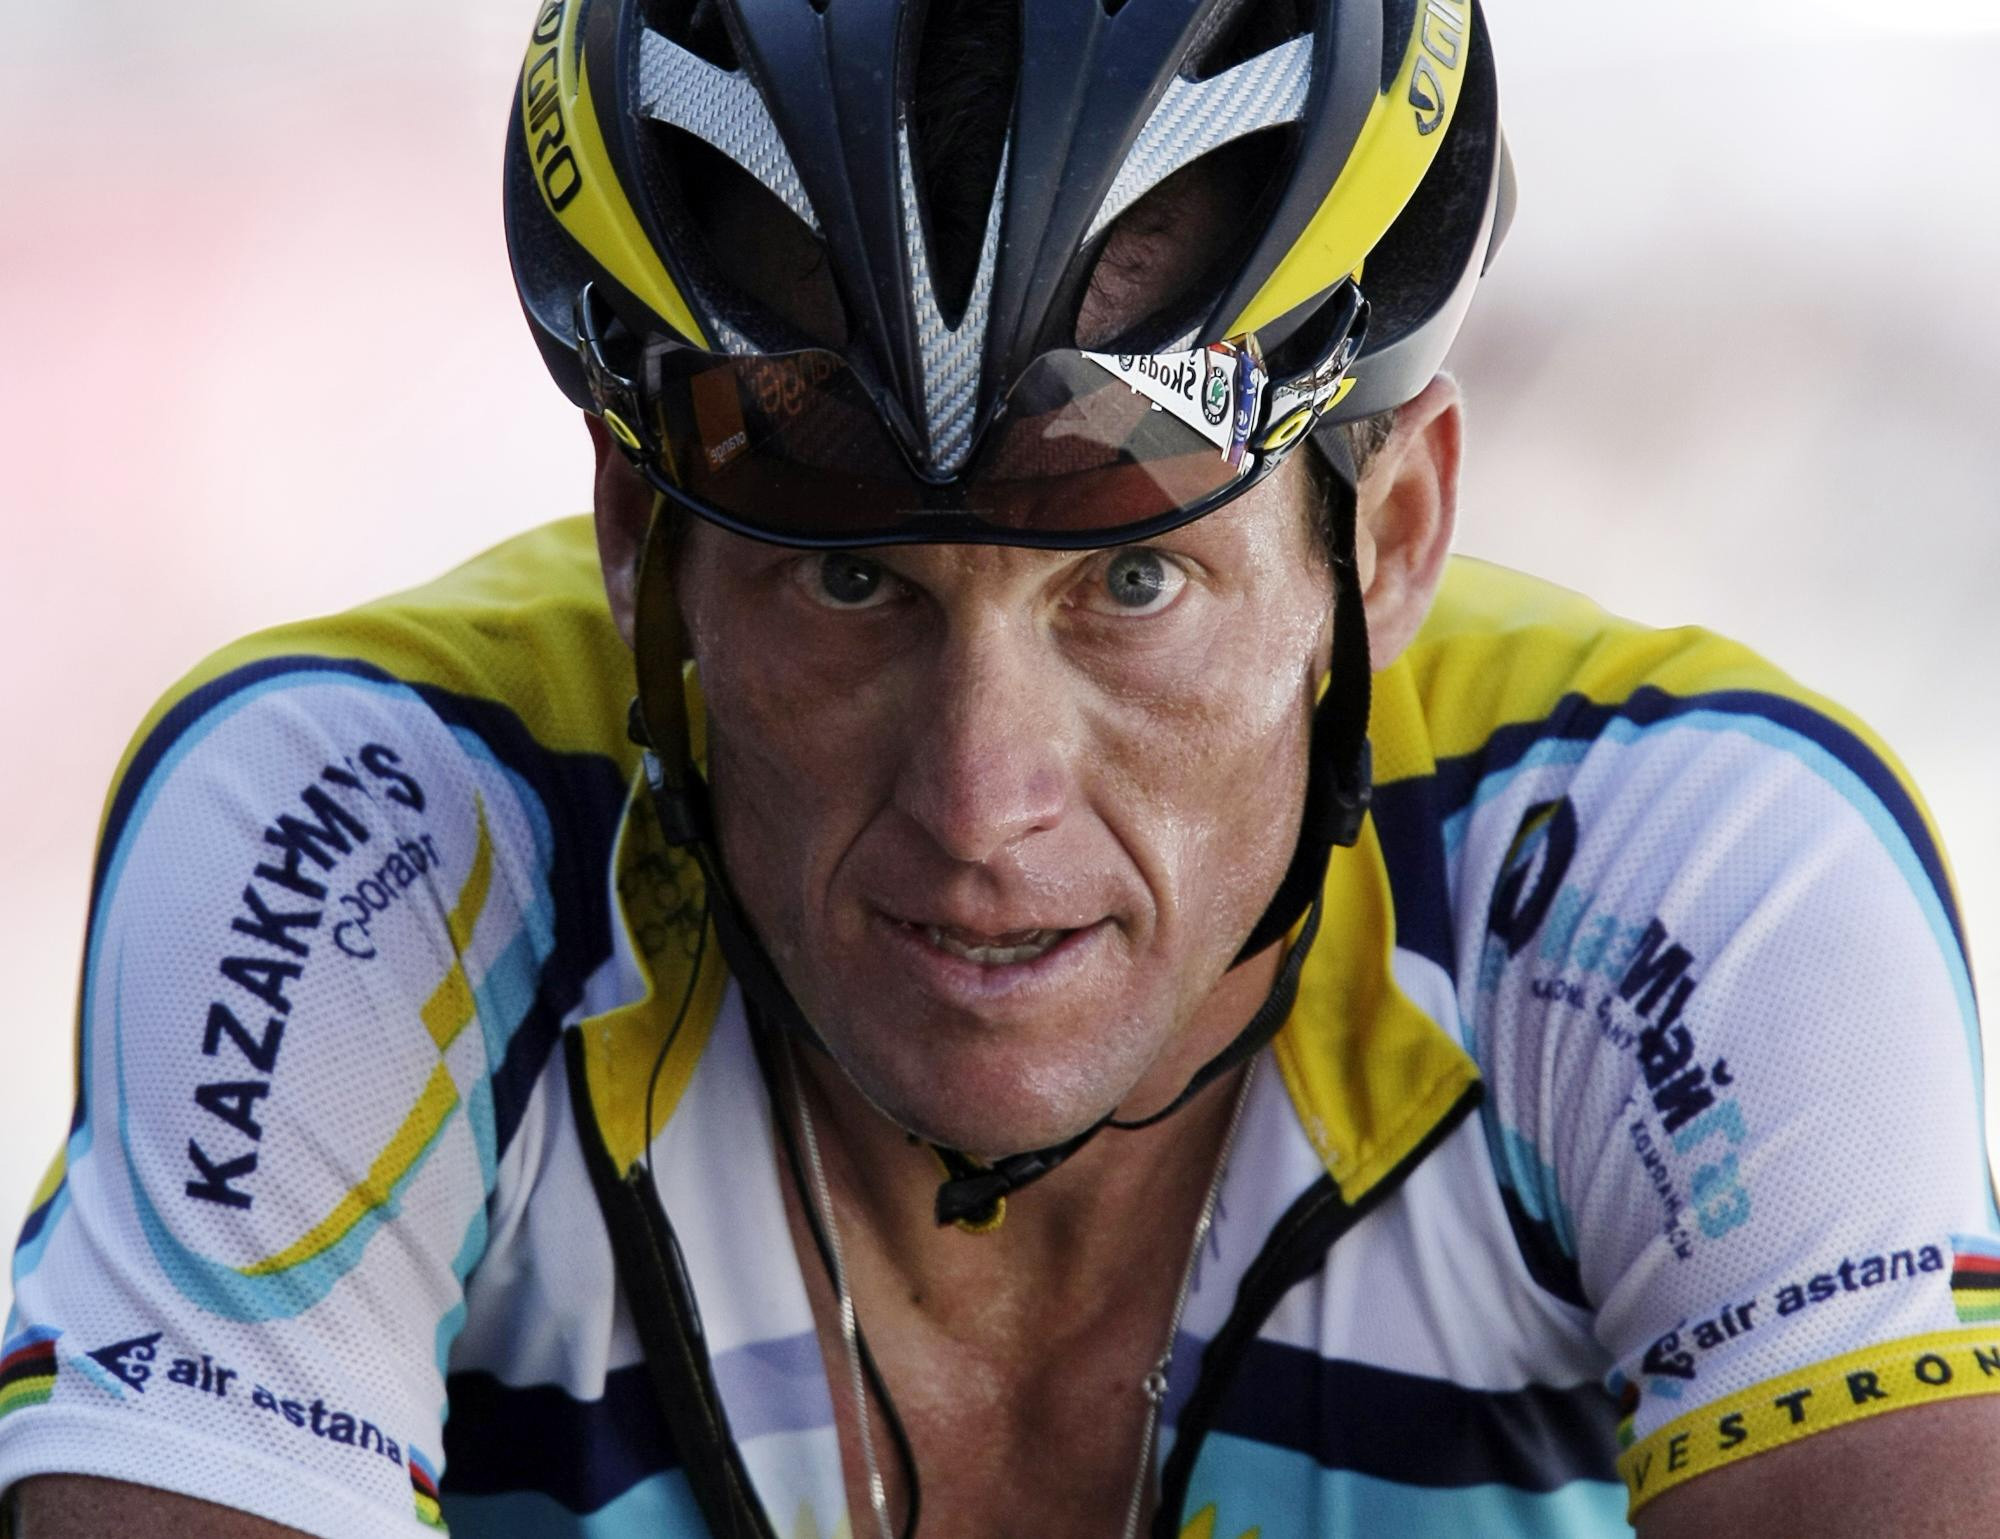 Lance's ironic calls for an end to doping in cycling